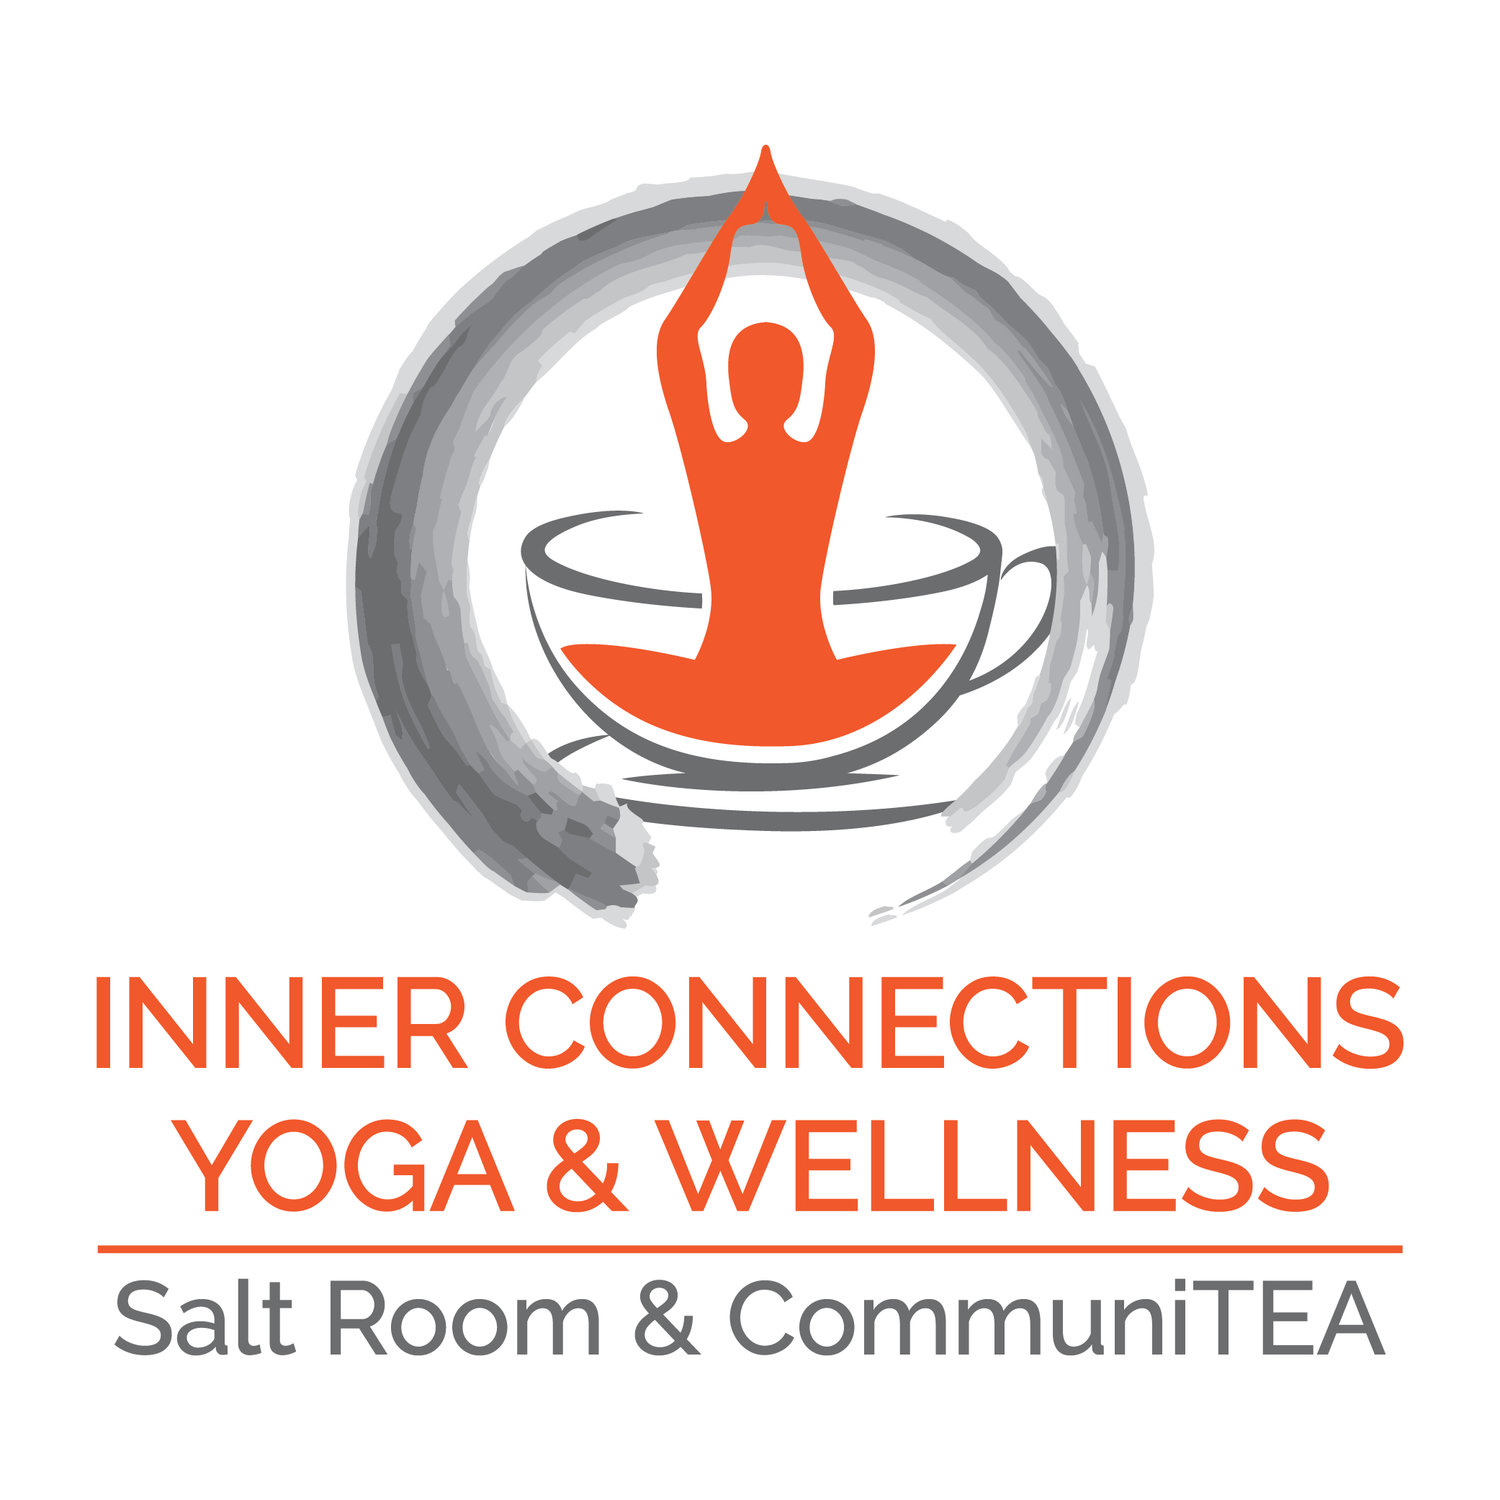 Inner Connections Yoga & Wellness, Salt Room & CommuniTEA